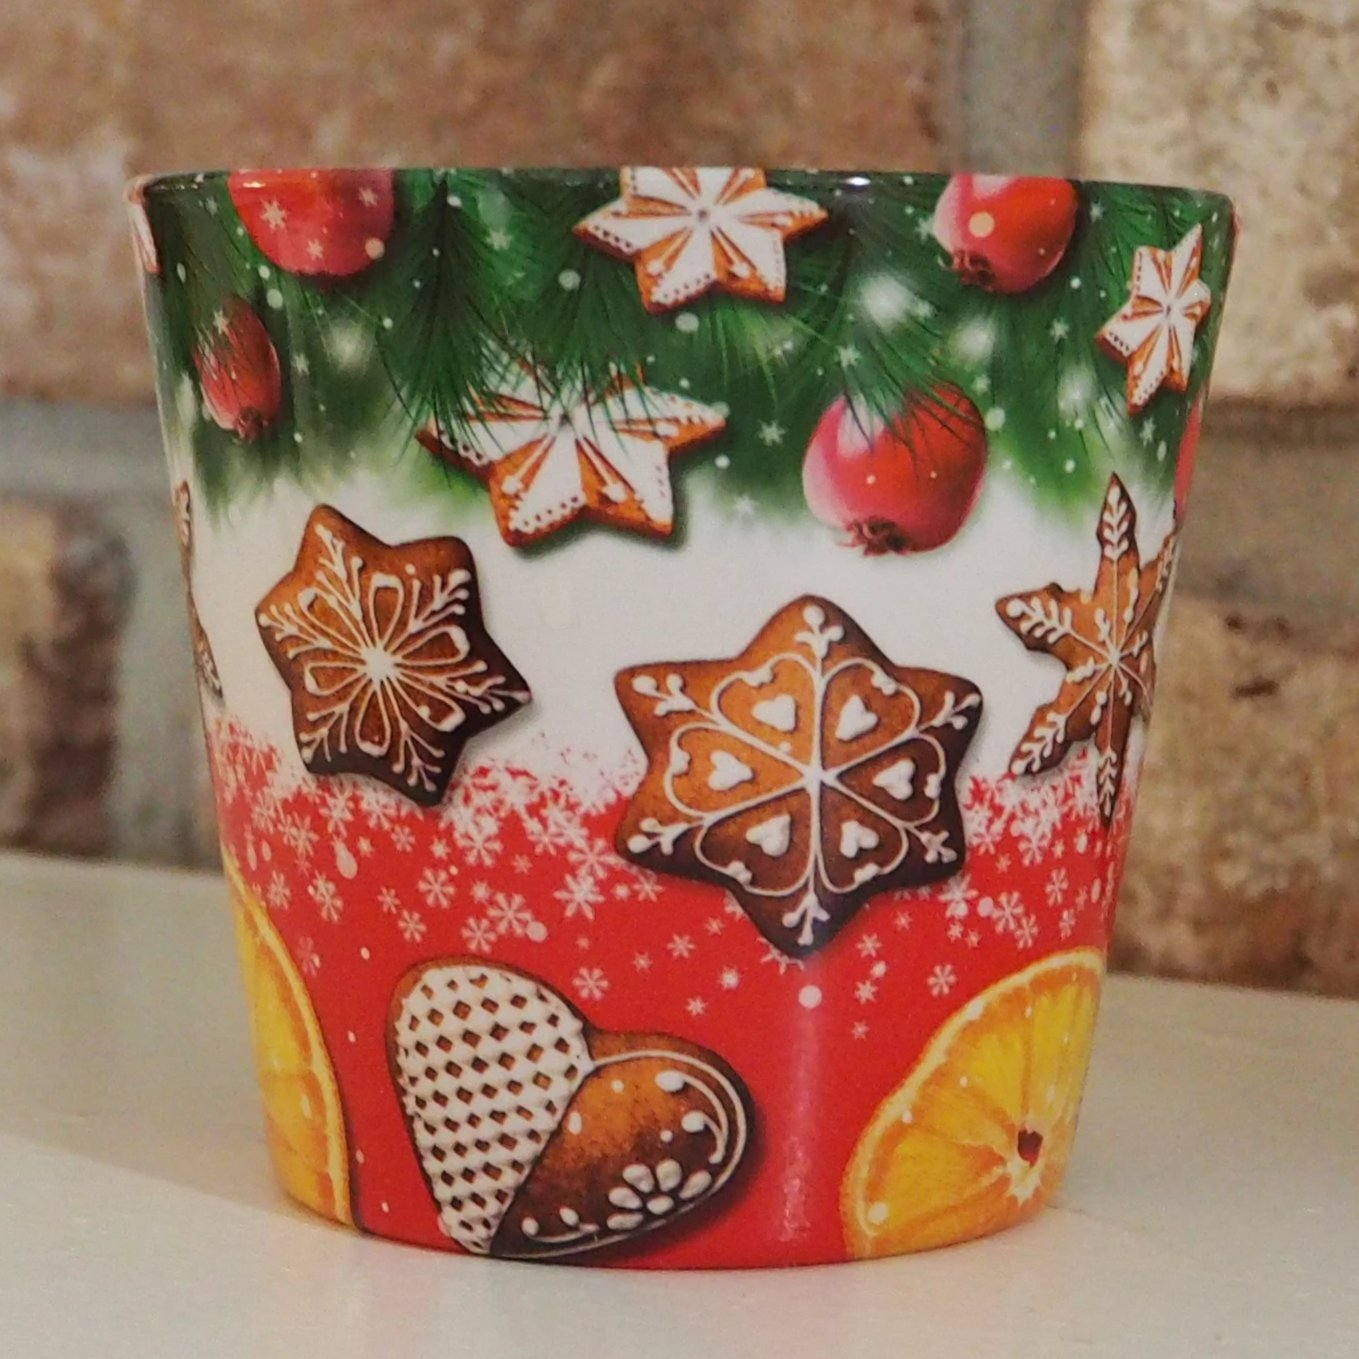 Christmas Scented Candle - Christmas Cookies